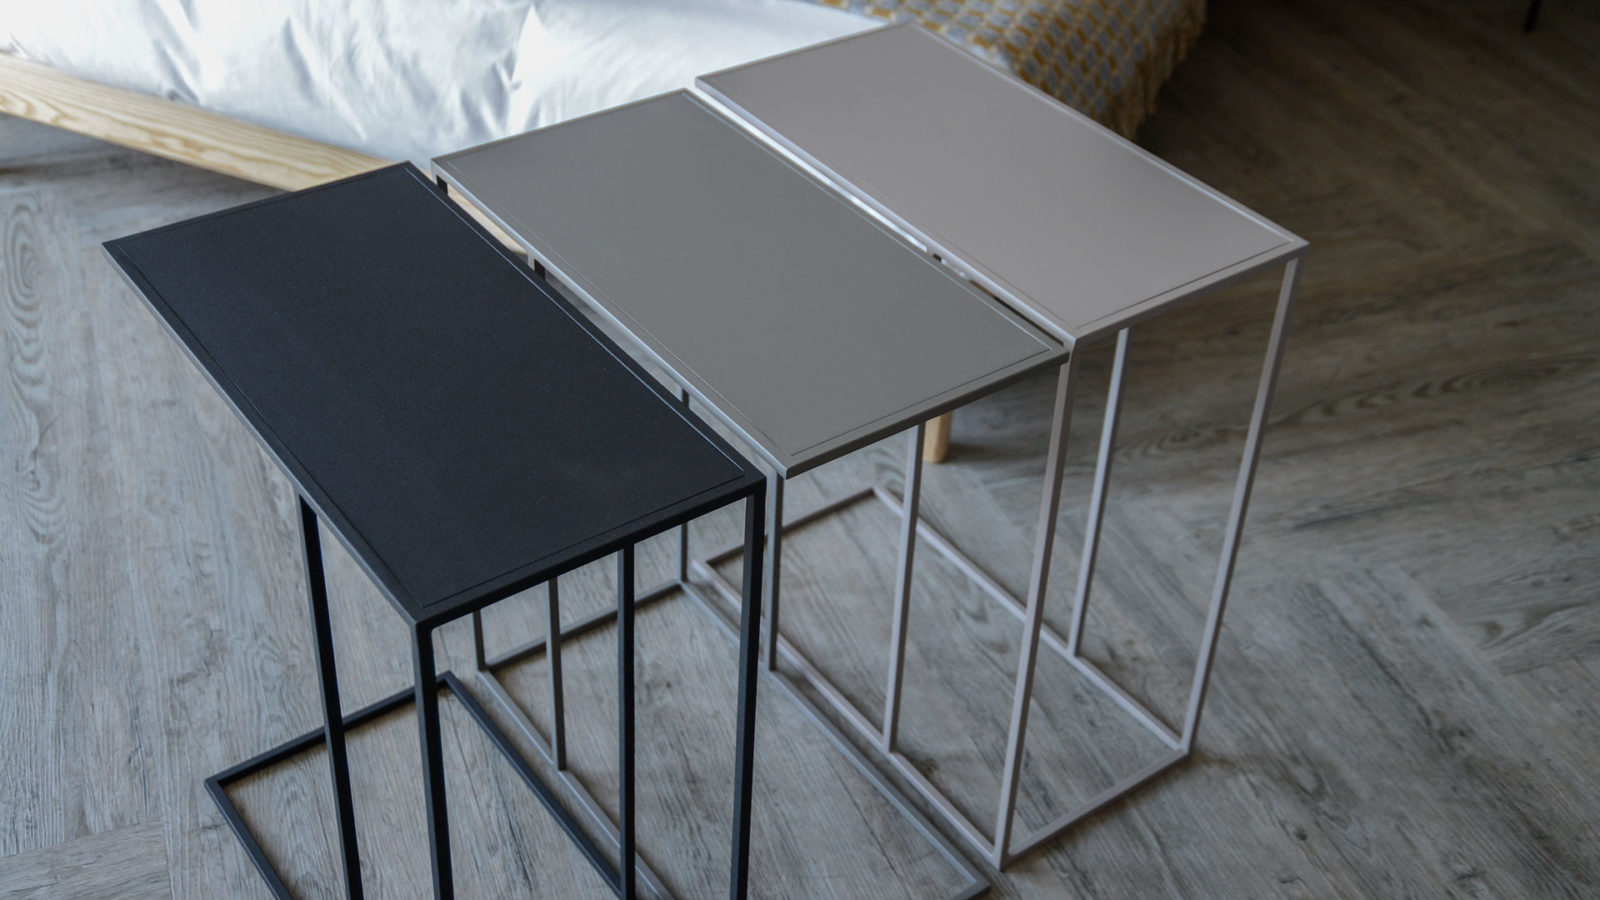 powder coated metal bedside tables in 3 colour options